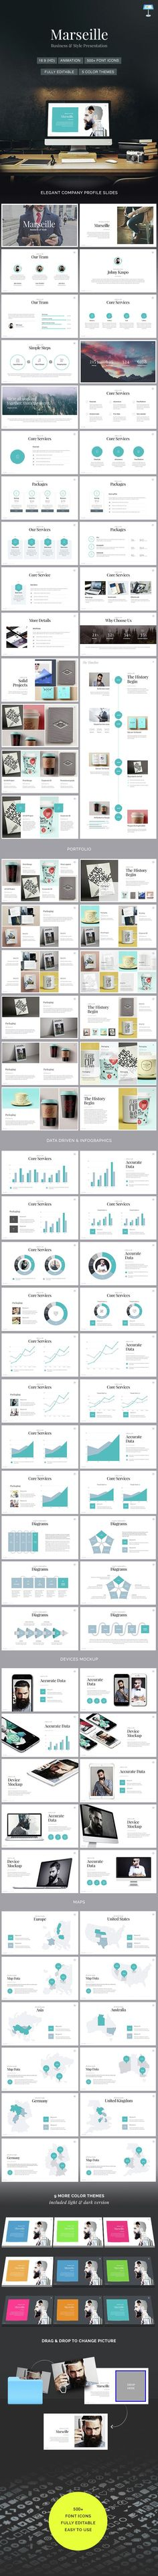 Primary Care PowerPoint Template PowerPoint Templates